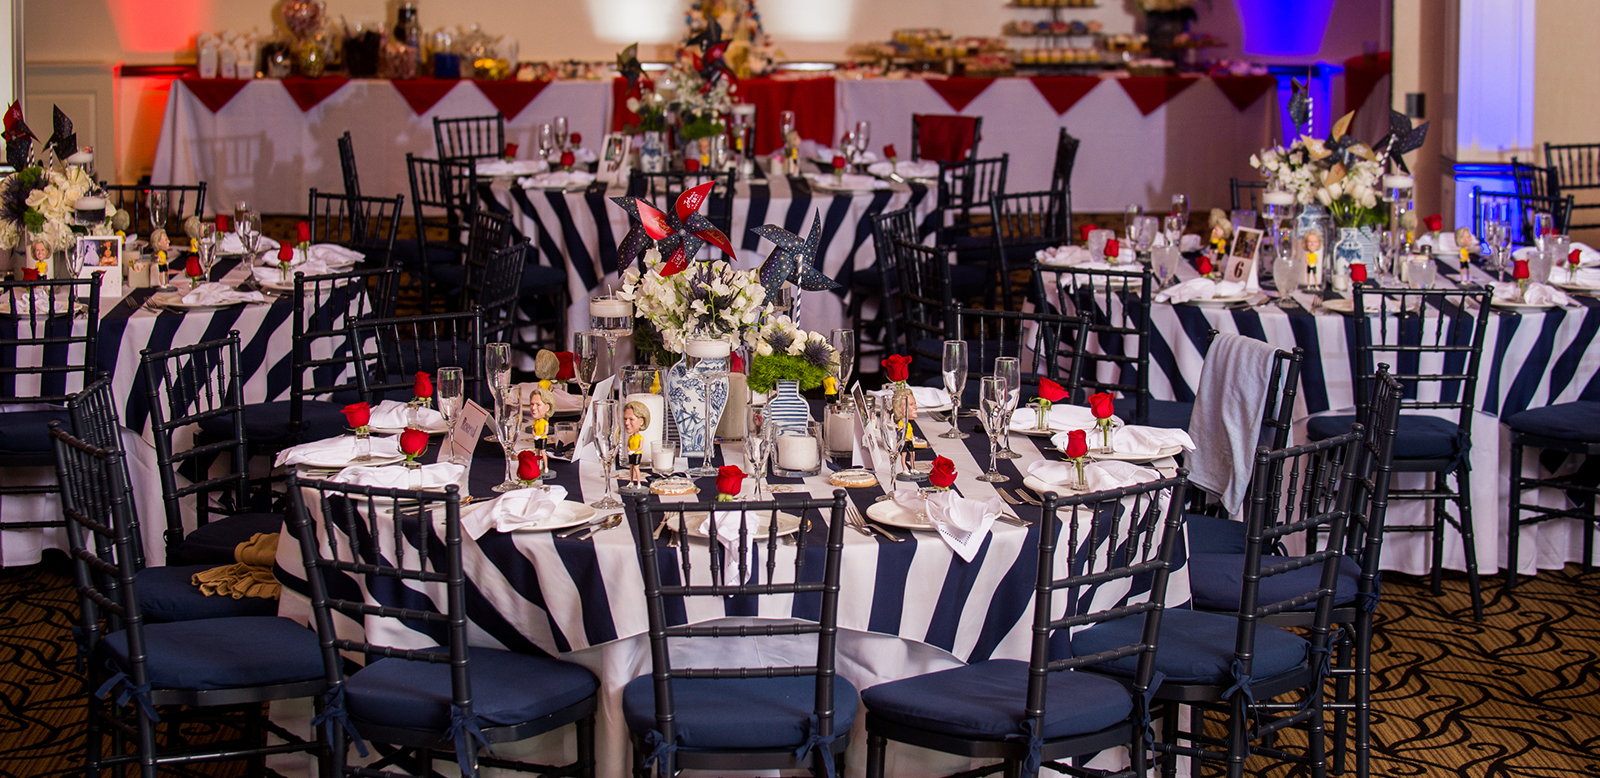 Weddings & Events by Valley Forge Flowers4